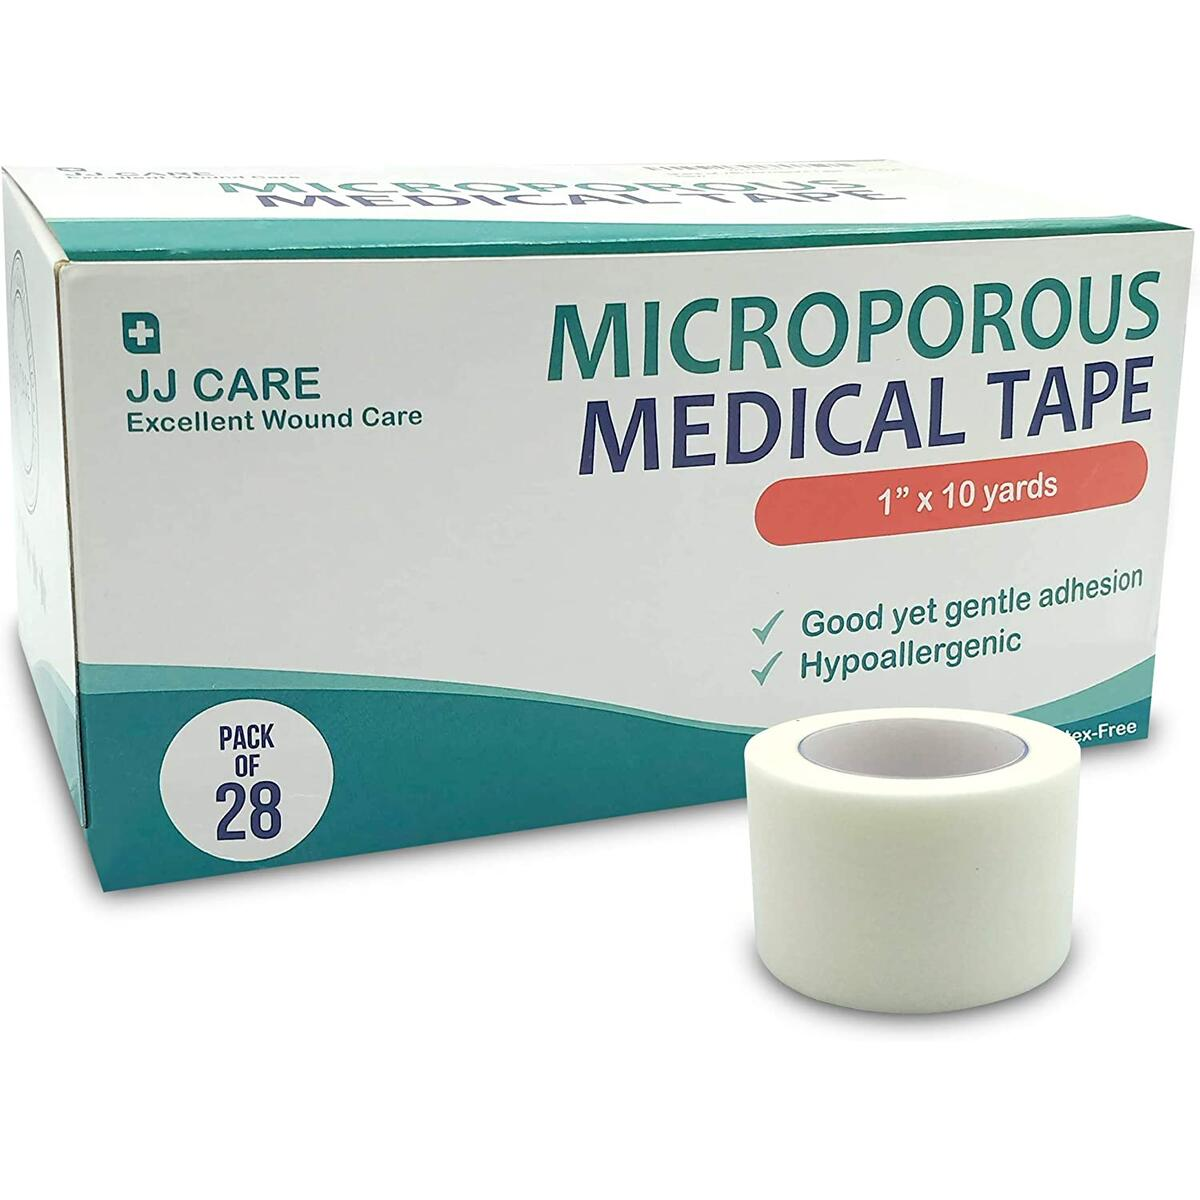 JJ CARE [Pack of 28] Micropore Tape, Medical Paper Tape 1 inch x 10 Yards, Hypoallergenic Paper Surgical Tape, Microporous Tape, Latex Free Adhesive for First Aid Supplies